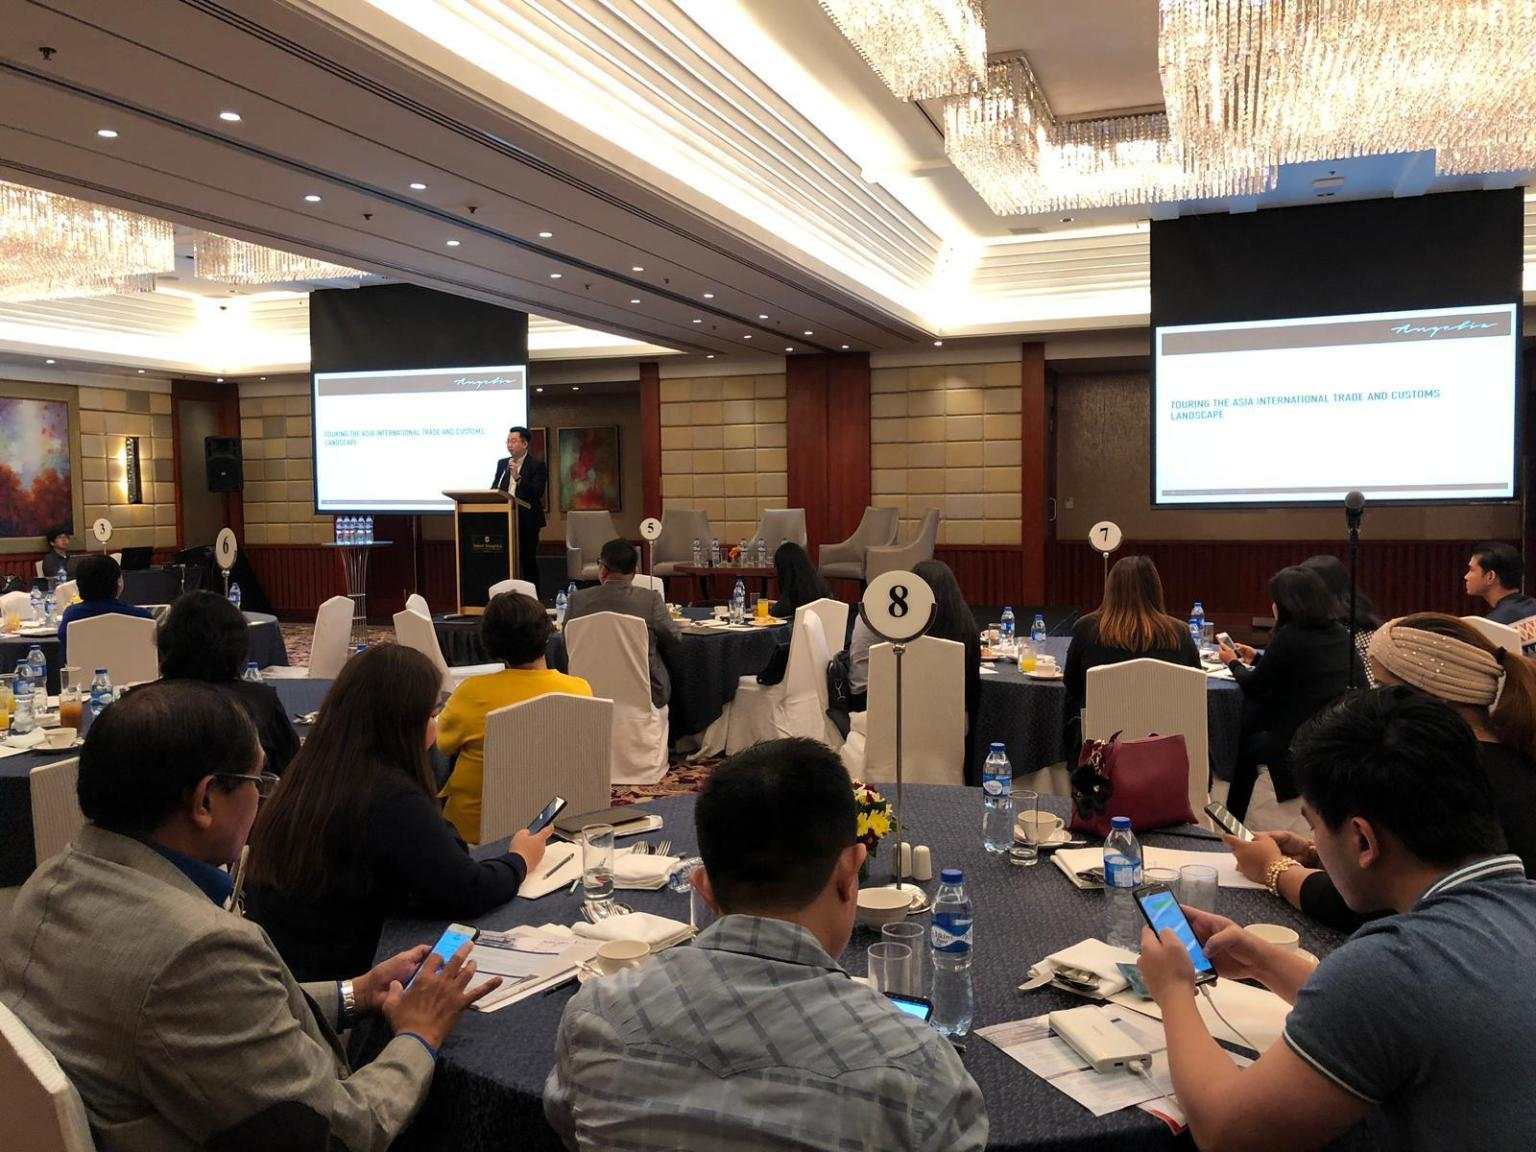 Managing your international trade in the Philippines and beyond in Asia Pacific: Ensuring trade compliance, identifying cost efficiencies and cost savings